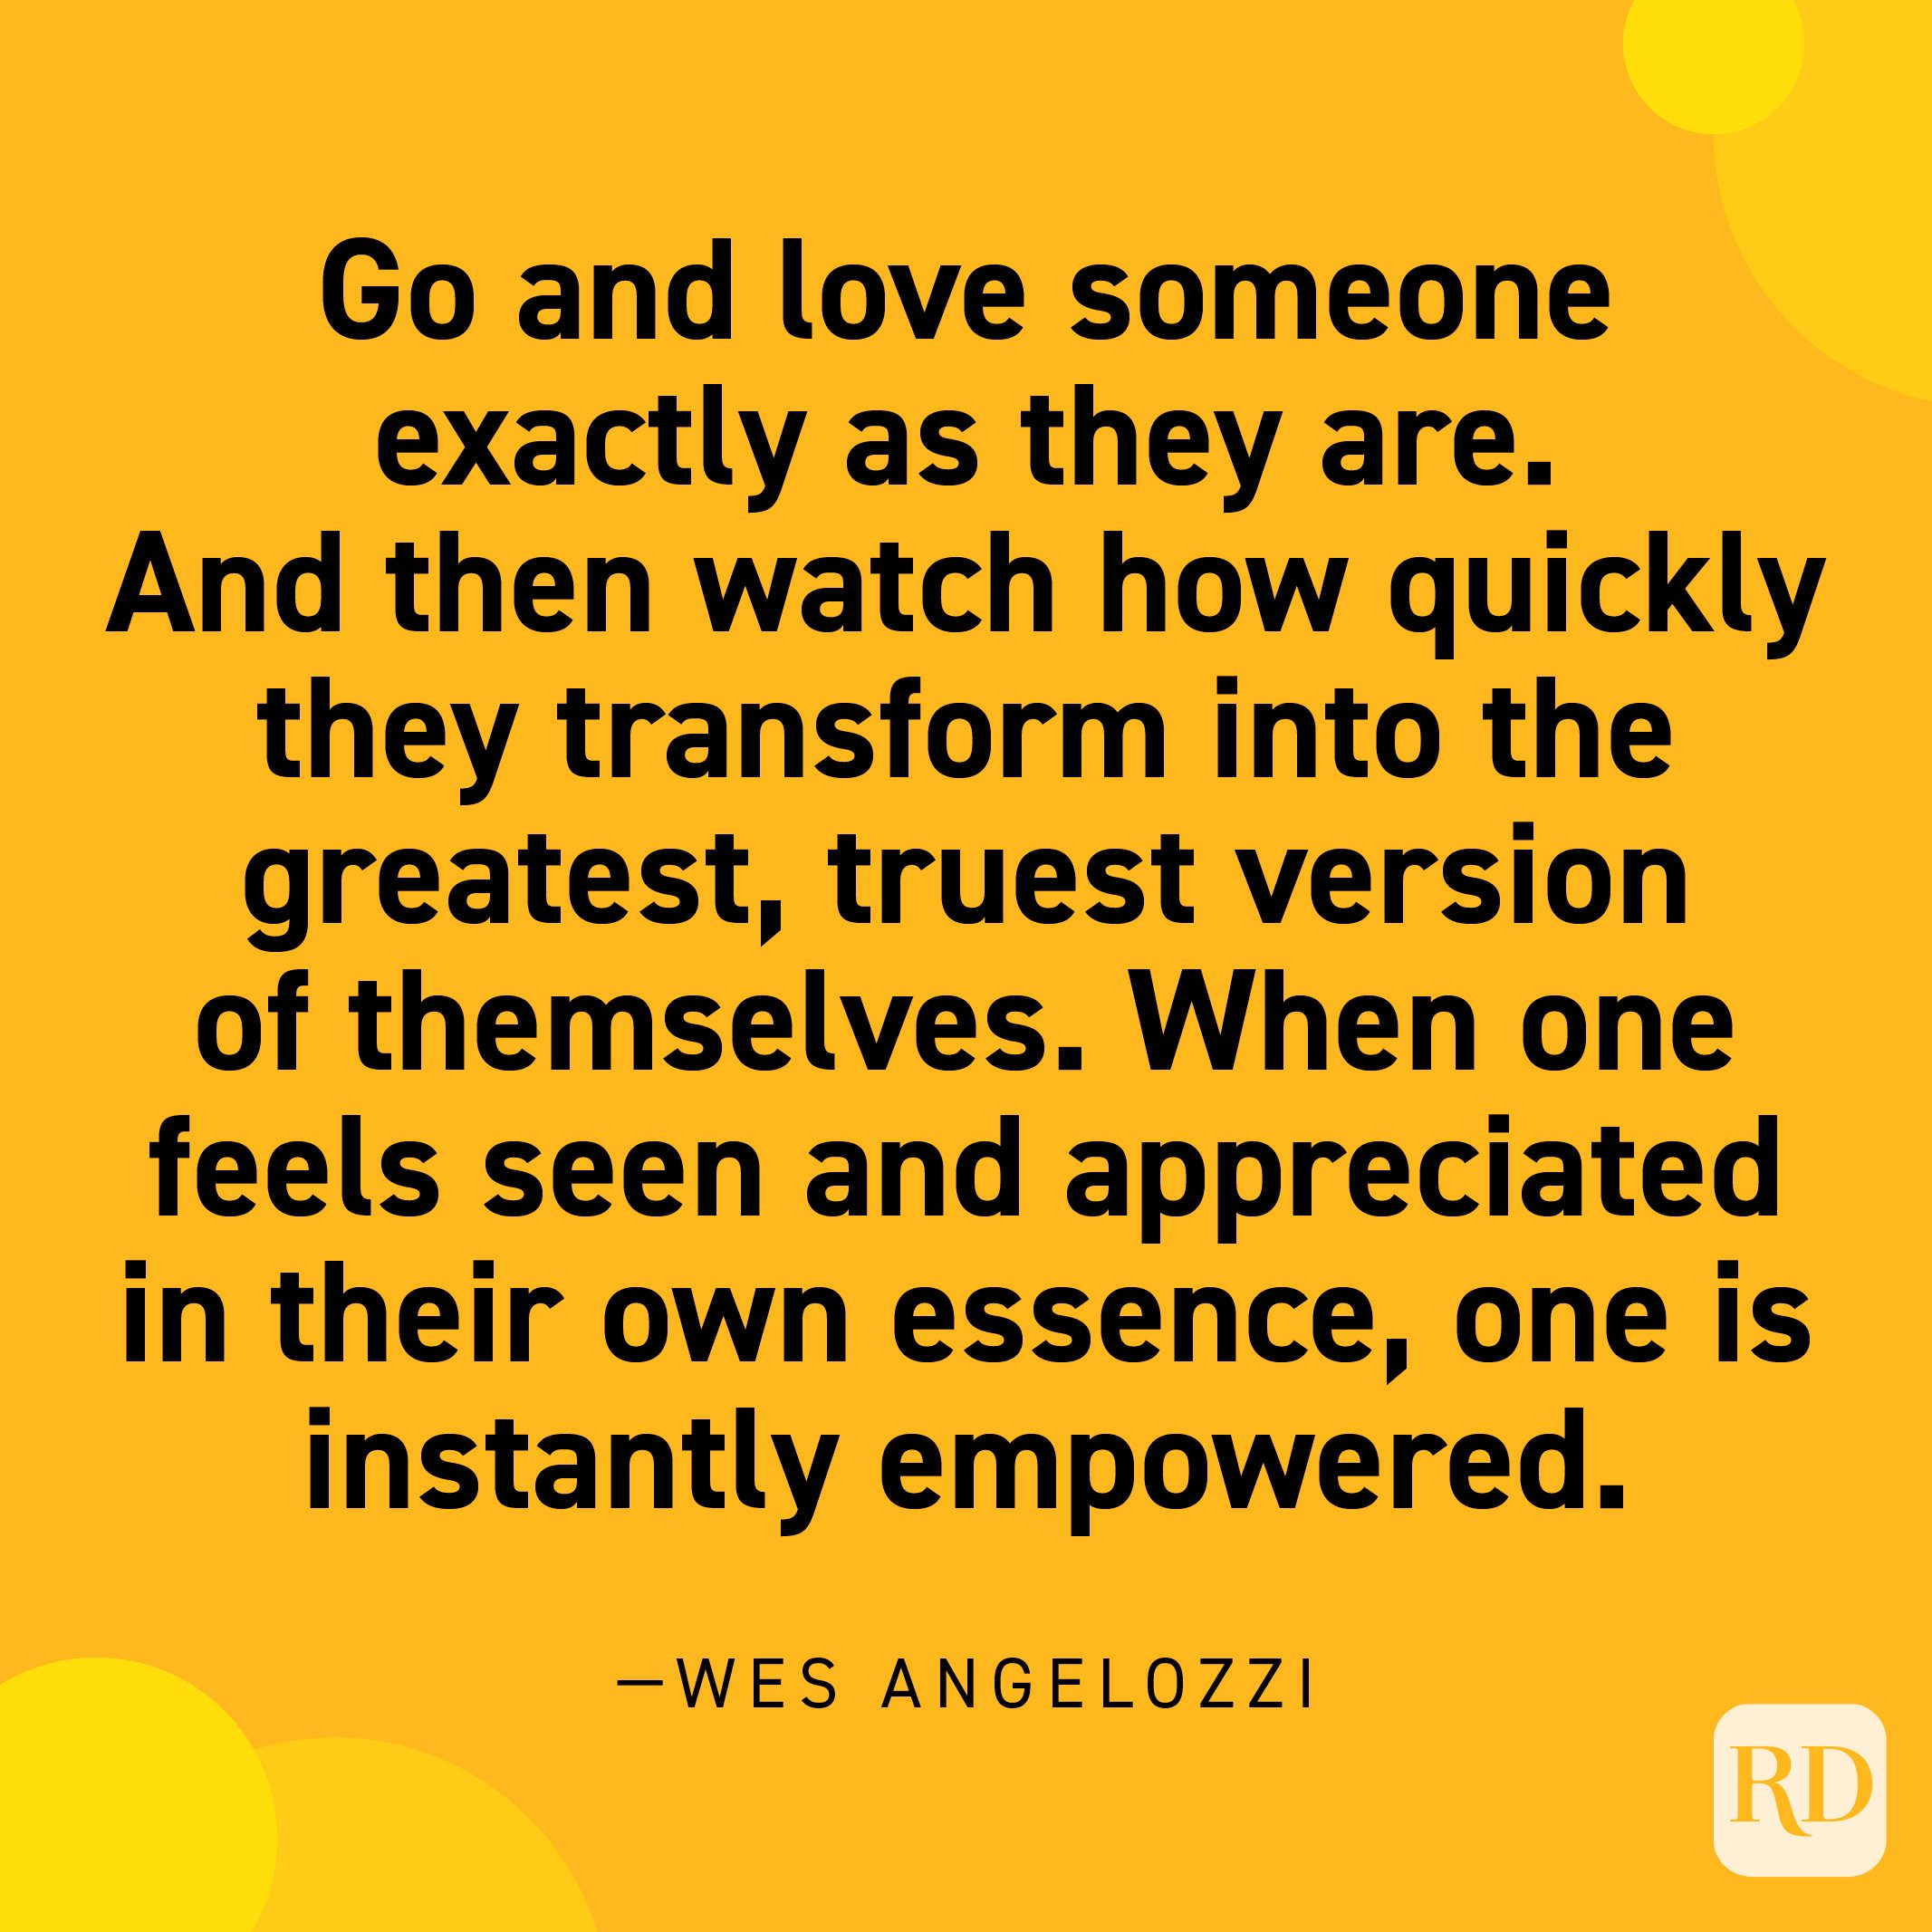 """""""Go and love someone exactly as they are. And then watch how quickly they transform into the greatest, truest version of themselves. When one feels seen and appreciated in their own essence, one is instantly empowered."""" —Wes Angelozzi."""